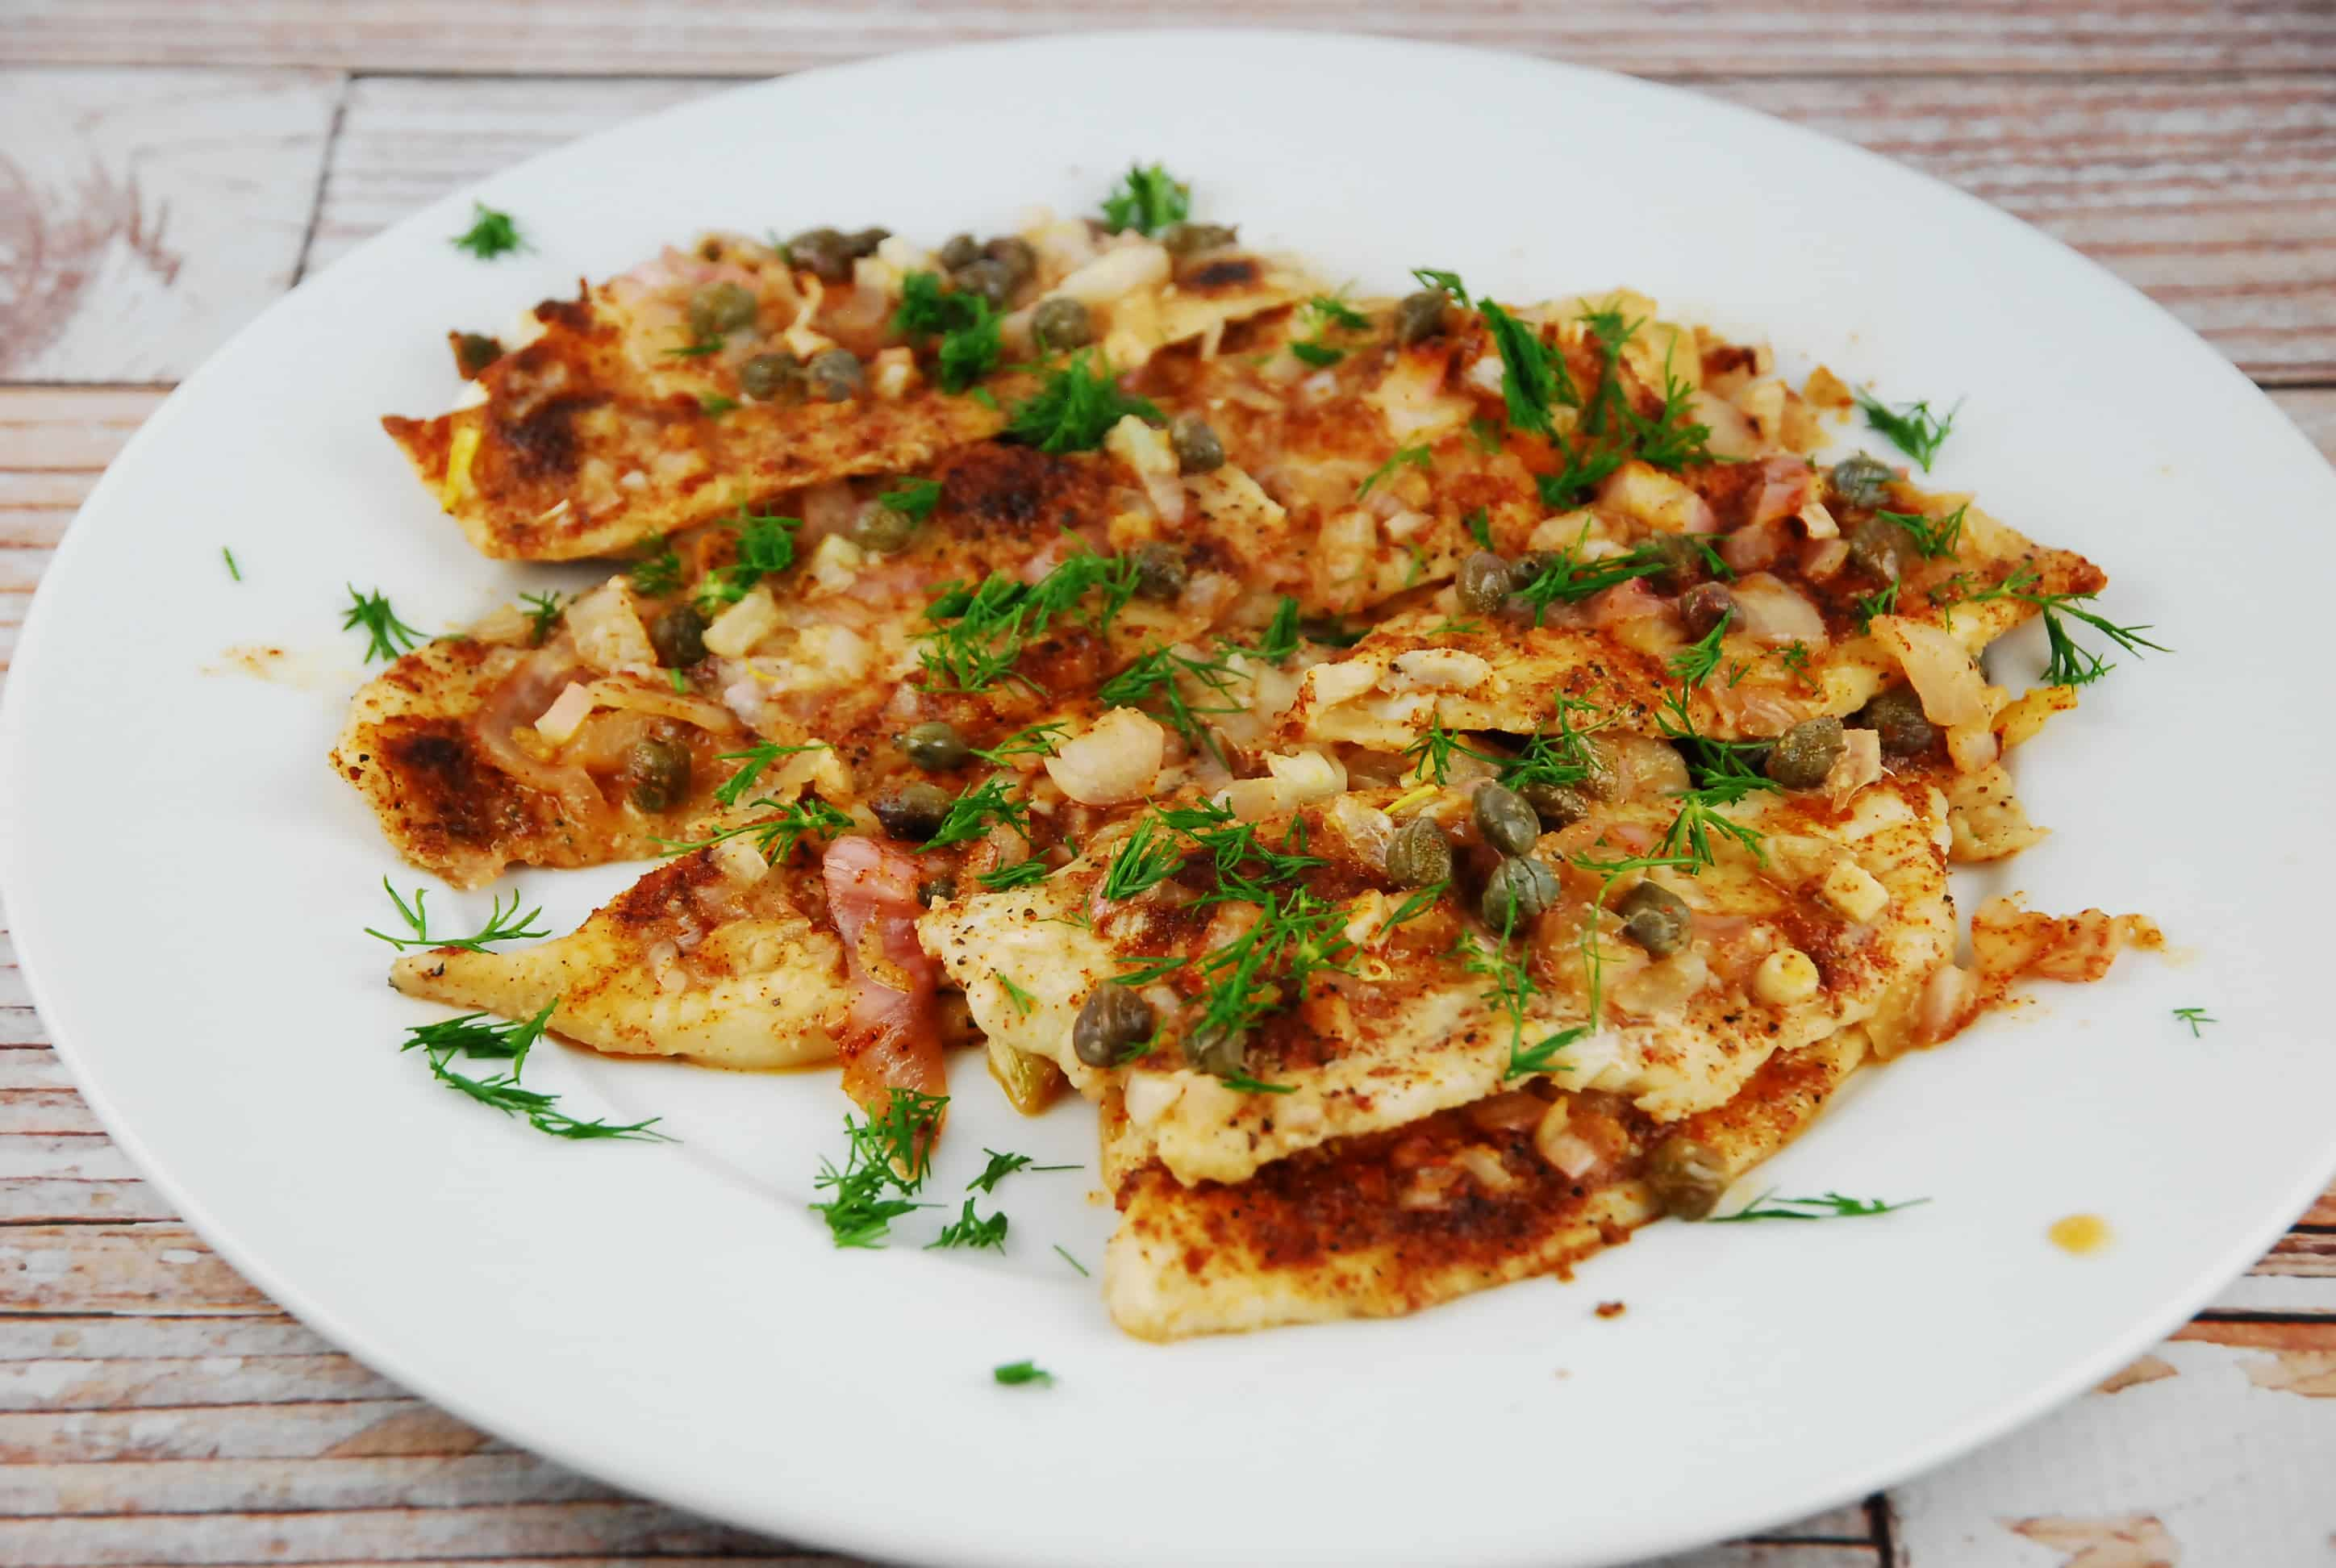 Mediterranean baked tilapia recipe 3 smart points laaloosh for Fish seasoning for tilapia